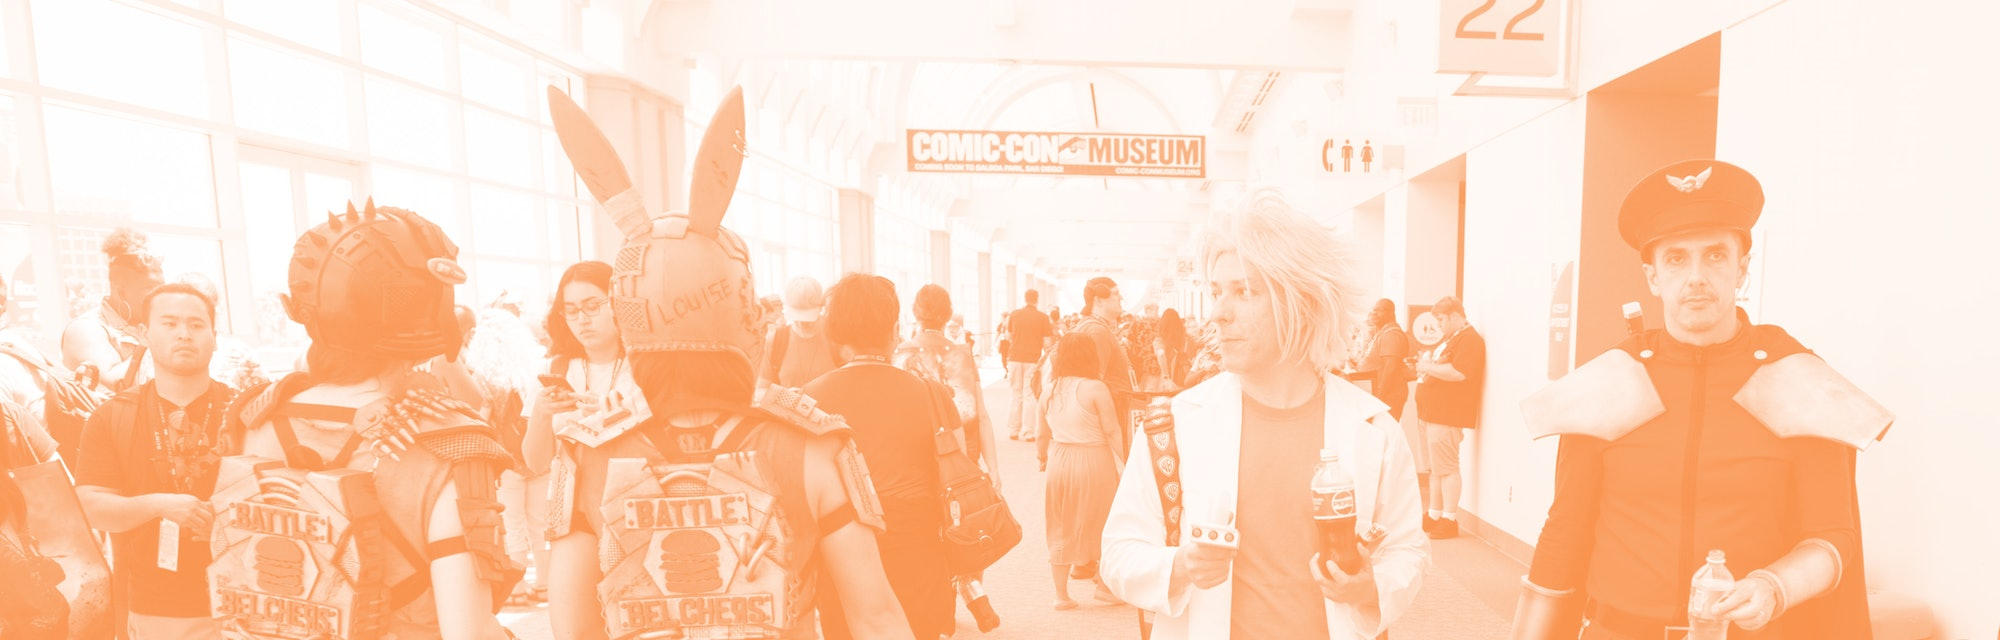 Cosplay at Comic-Con.